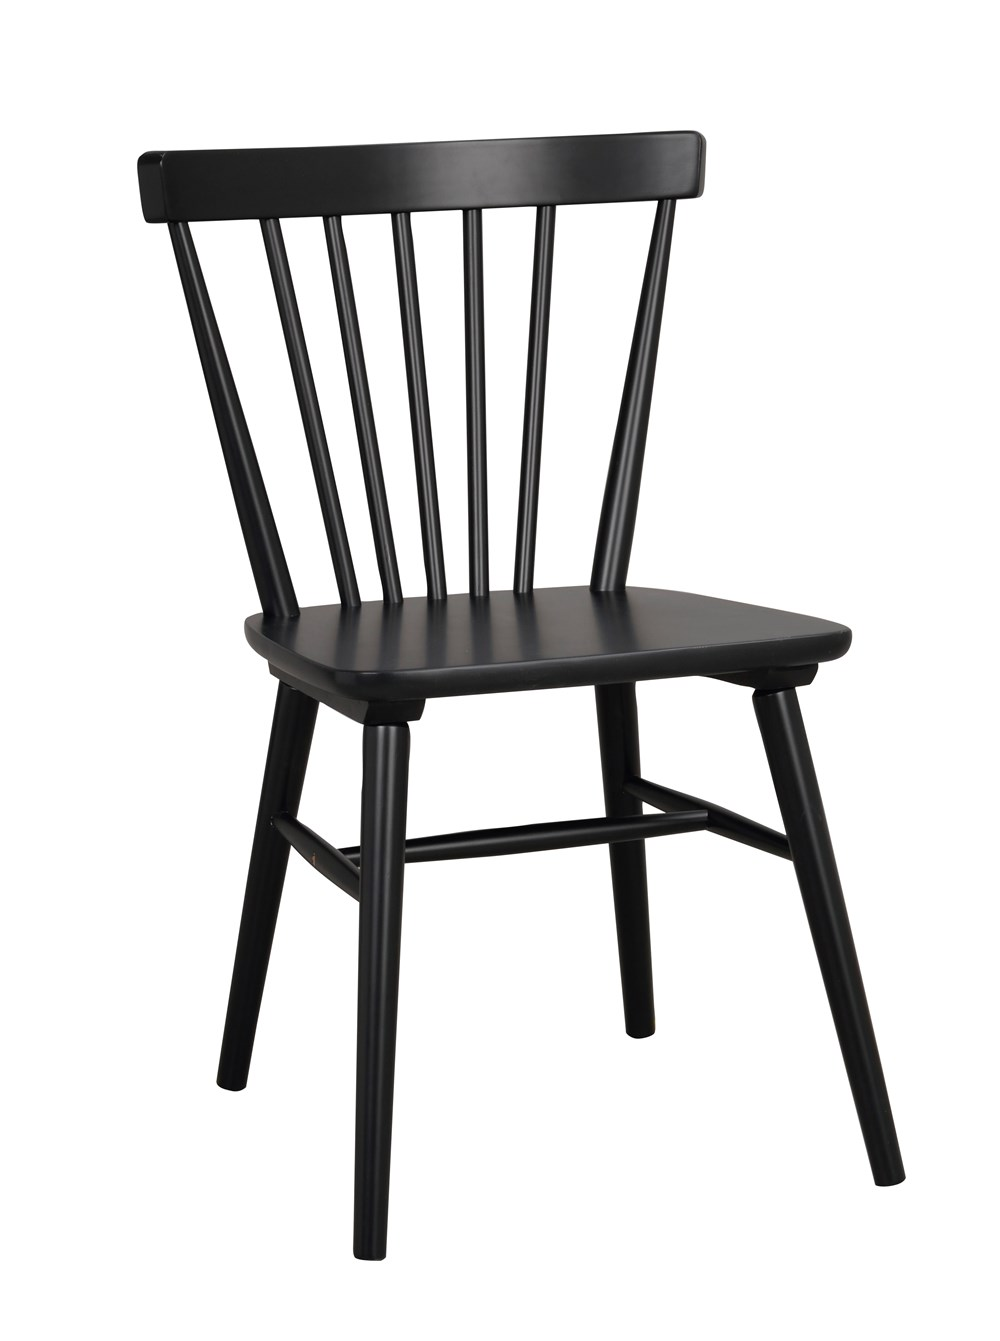 AKITA CHAIR Black Rubberwood Chair